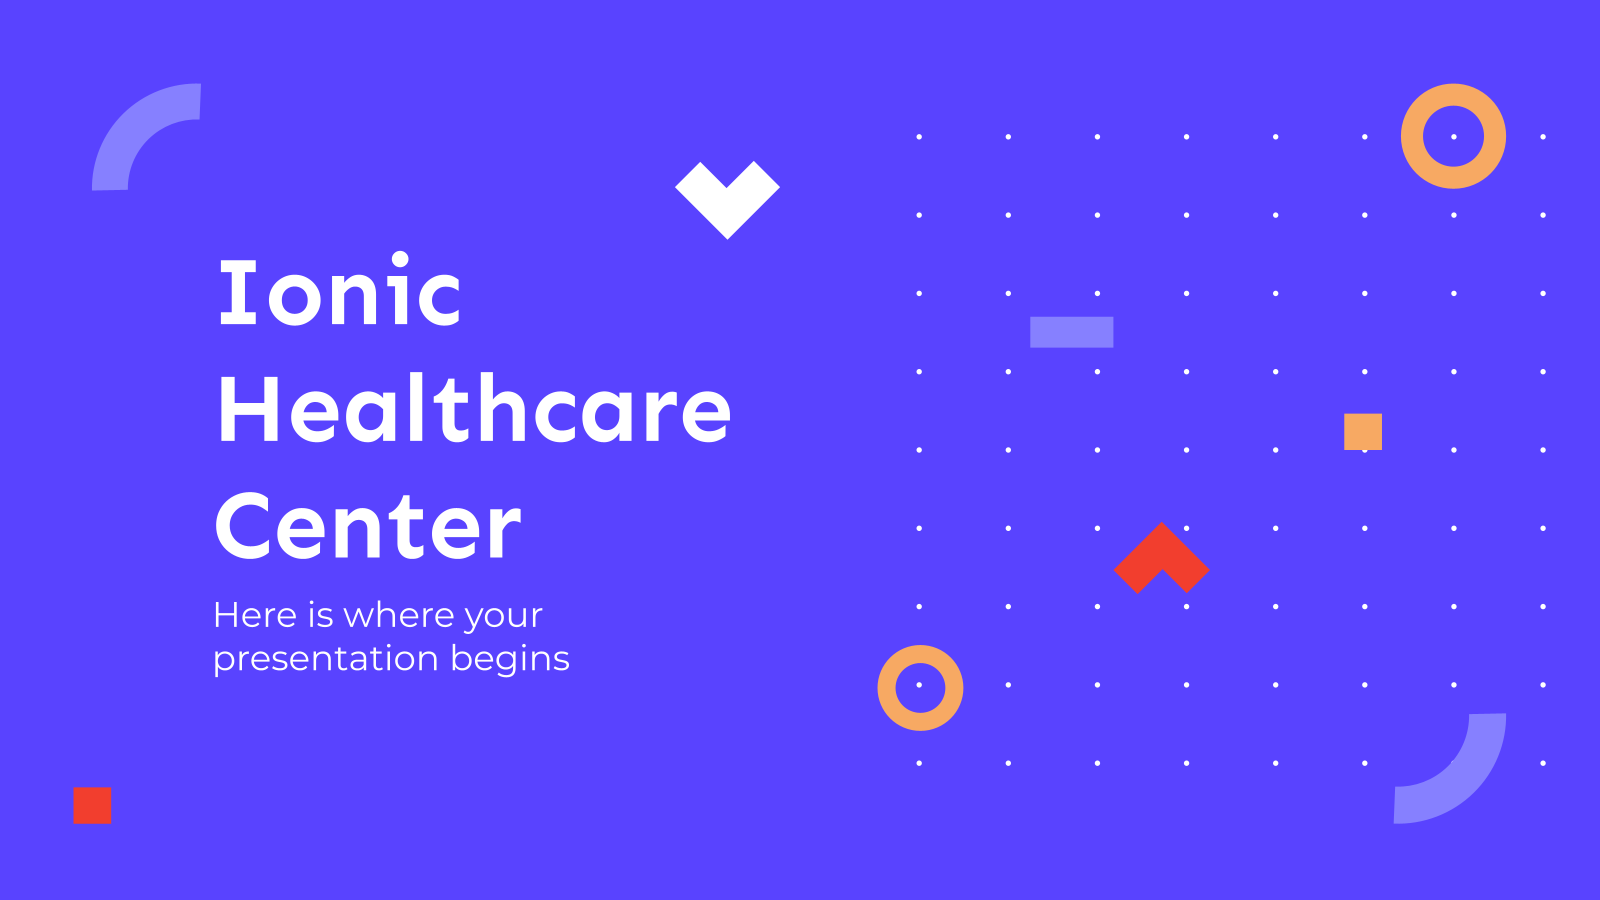 Ionic Healthcare Center presentation template